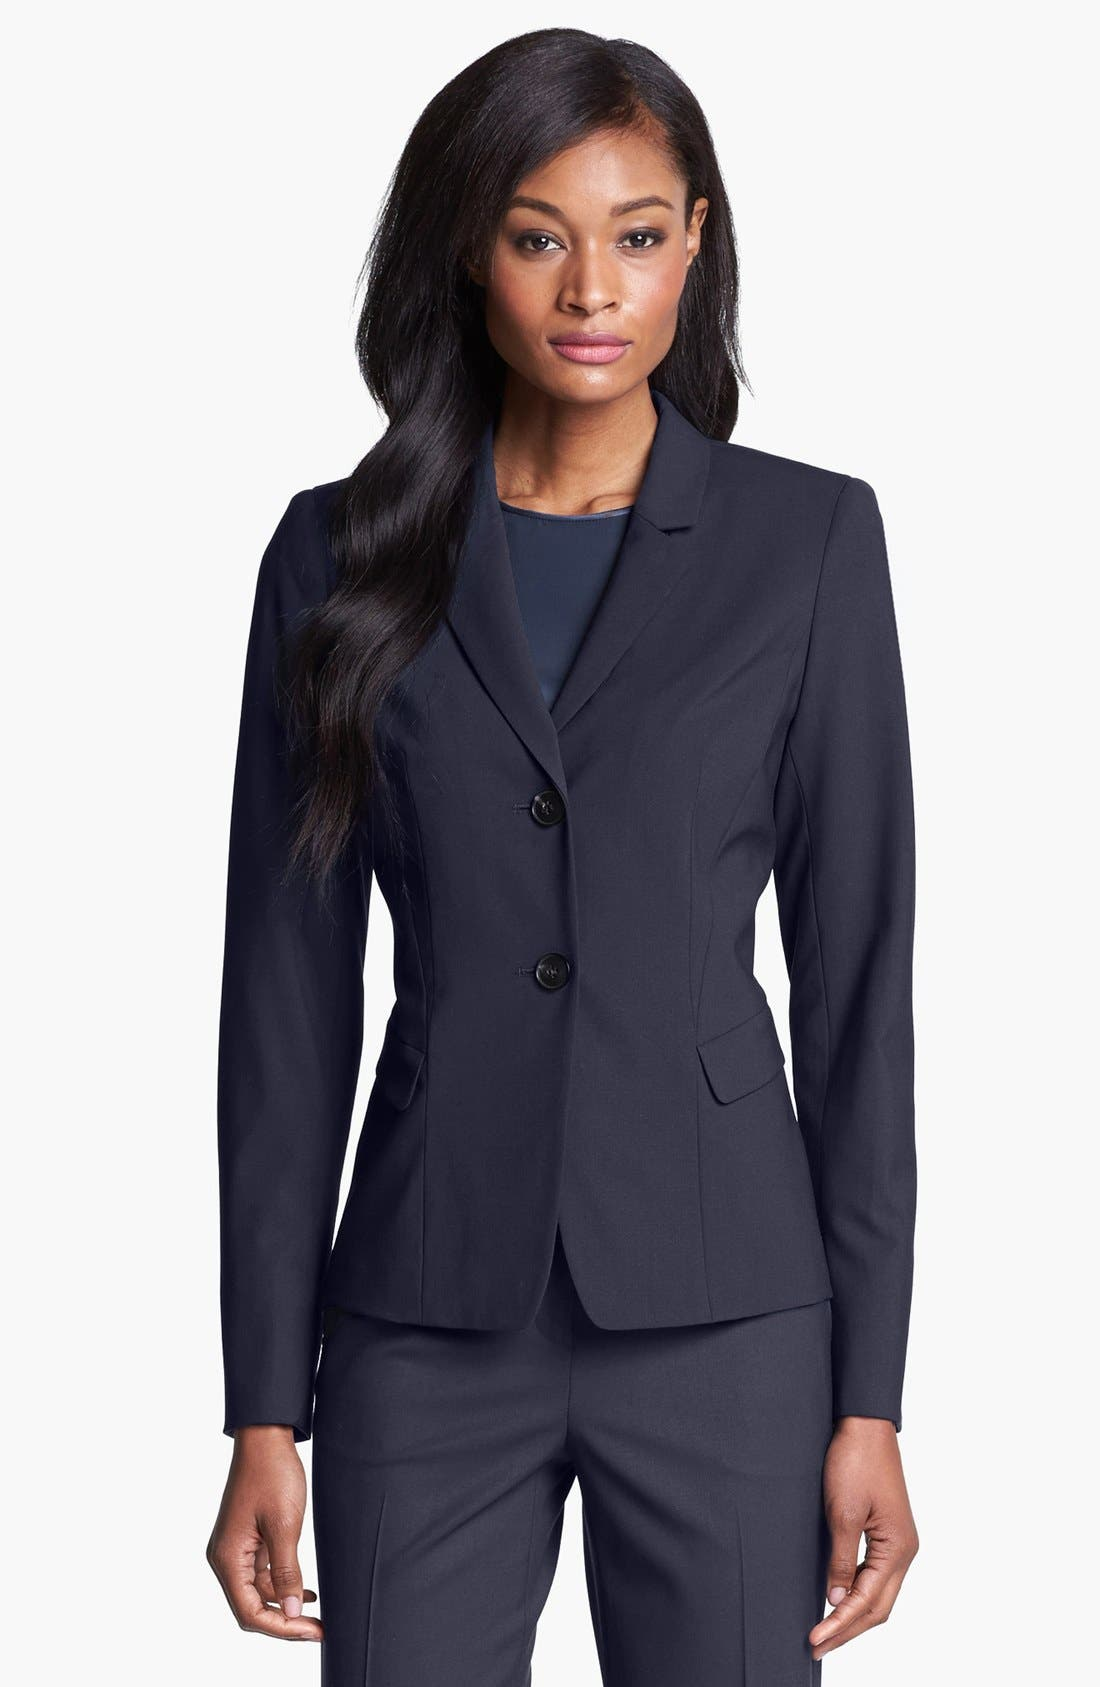 Main Image - Lafayette 148 New York 'Willa' Stretch Wool Jacket